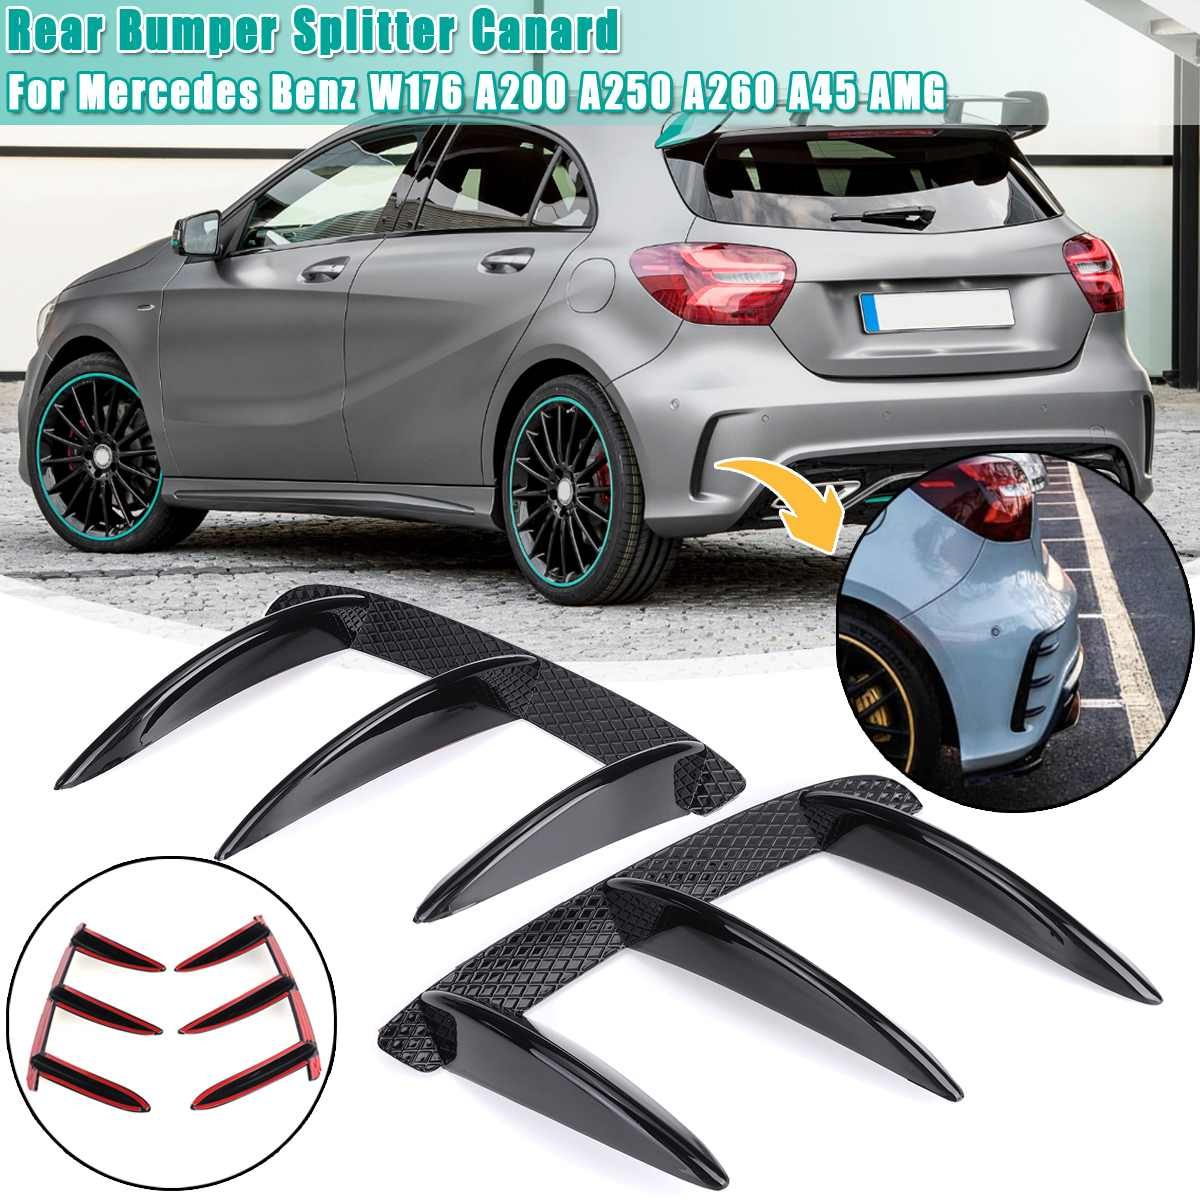 Black Rear Aero Flaps Bumper Canards Vent For Mercedes Benz W176 A250 A45 AMG